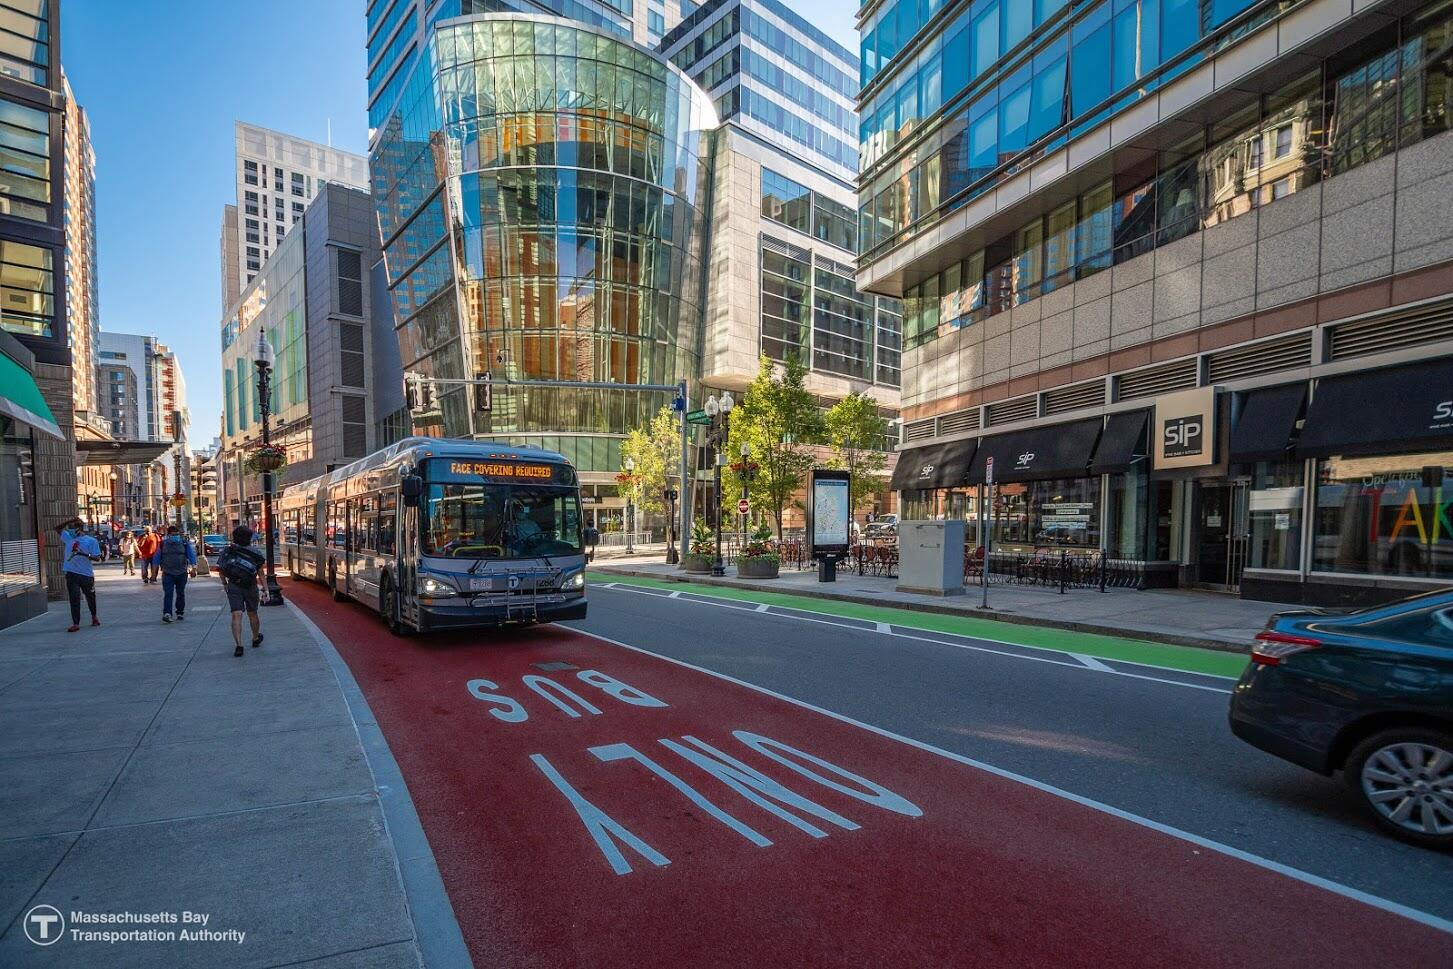 A Silver Line Bus is seen traveling on a dedicated bus lane on Washington Street in Downtown Boston